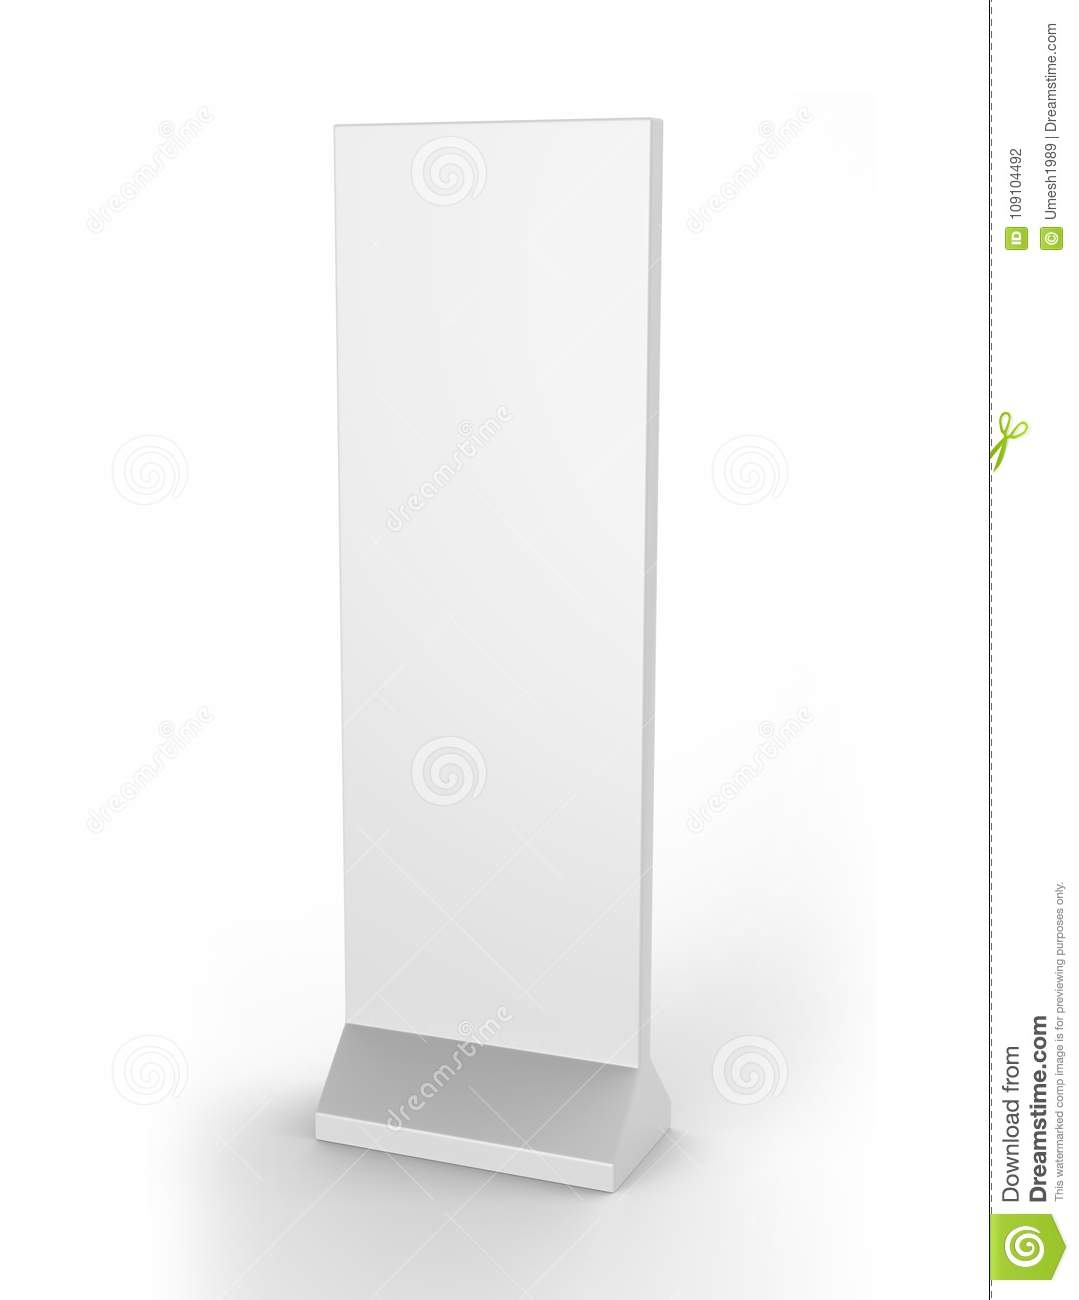 Outdoor Advertising POS POI Stand Banner Or Lightbox. Illustration Isolated On White Background. Mock Up Template Ready For Your D